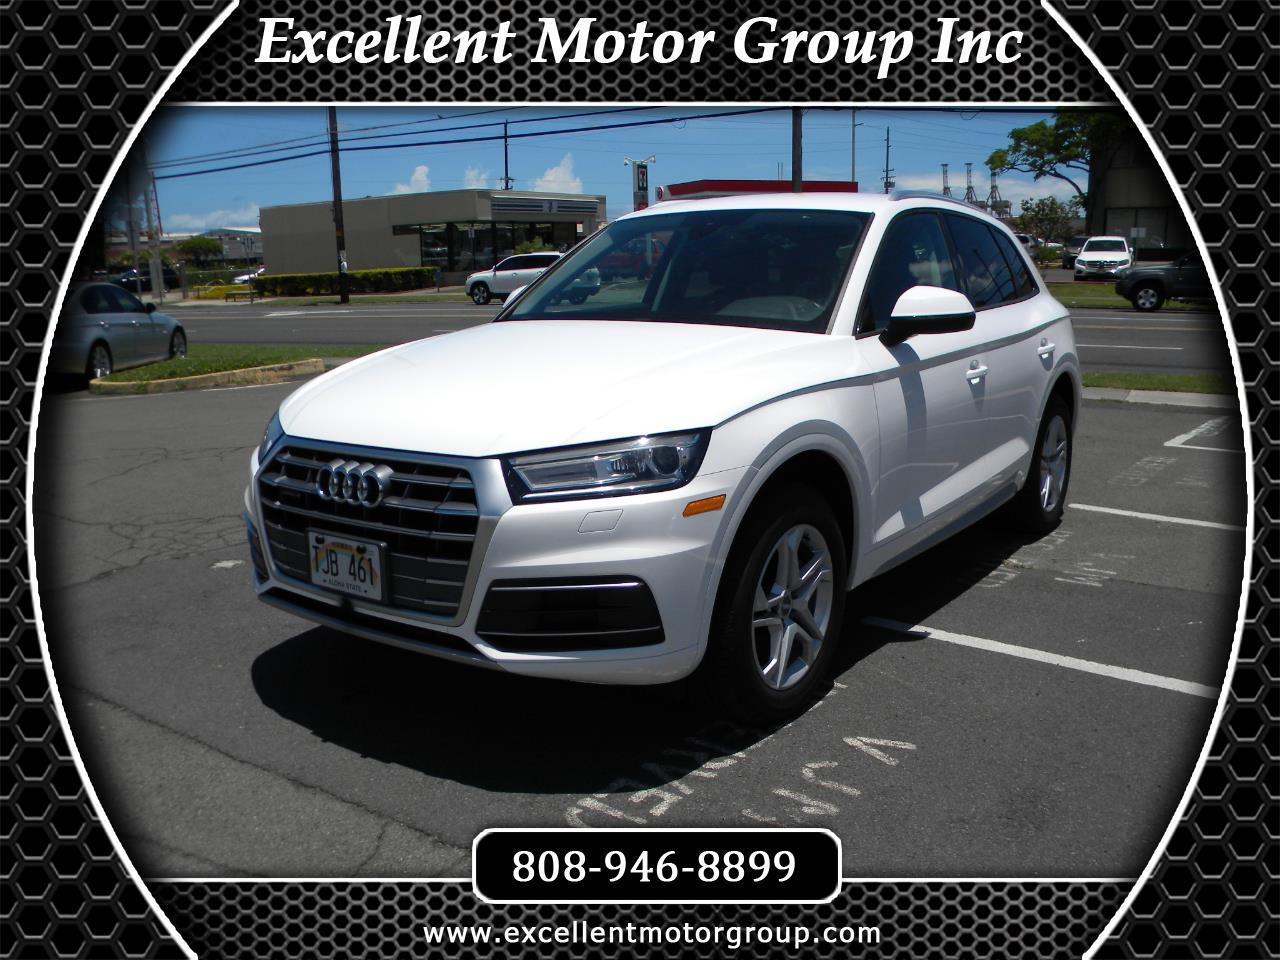 2018 Audi Q5 2.0T Premium Quattro w/ Tech Package